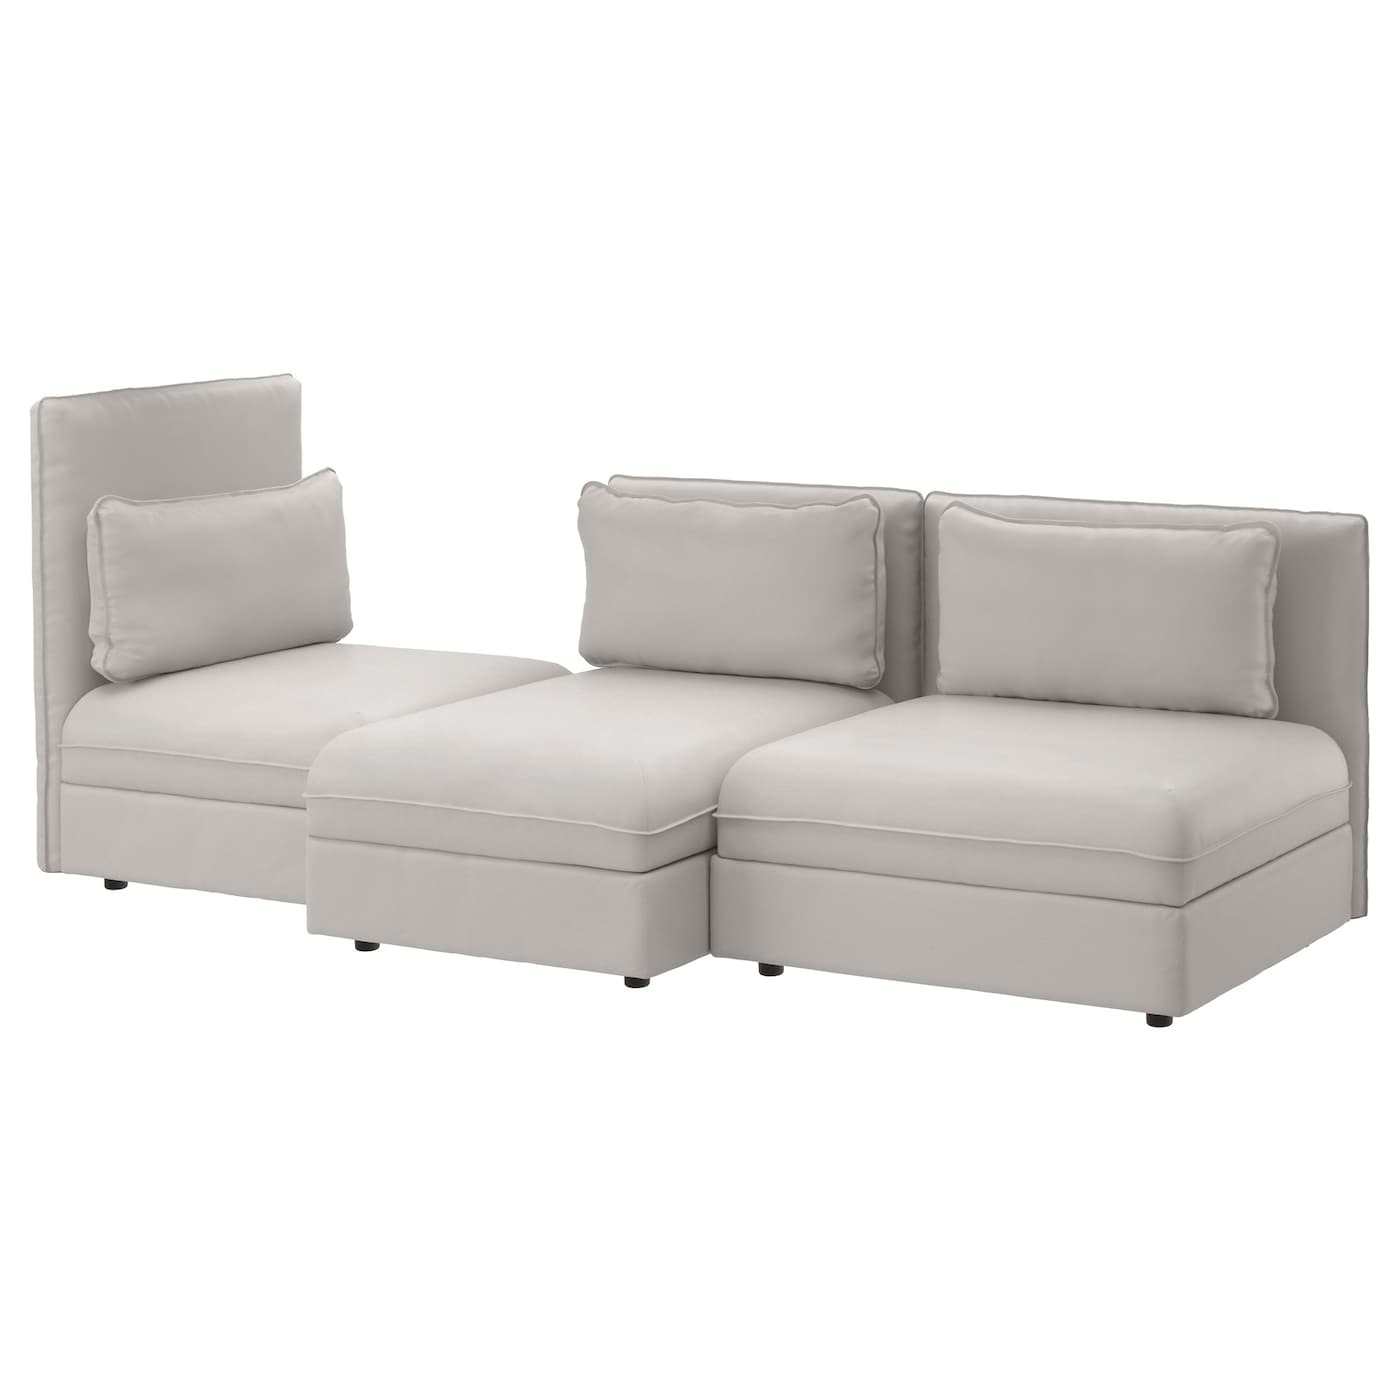 Vallentuna 3 seat sofa ramna light grey ikea - Sofas en esquina ...